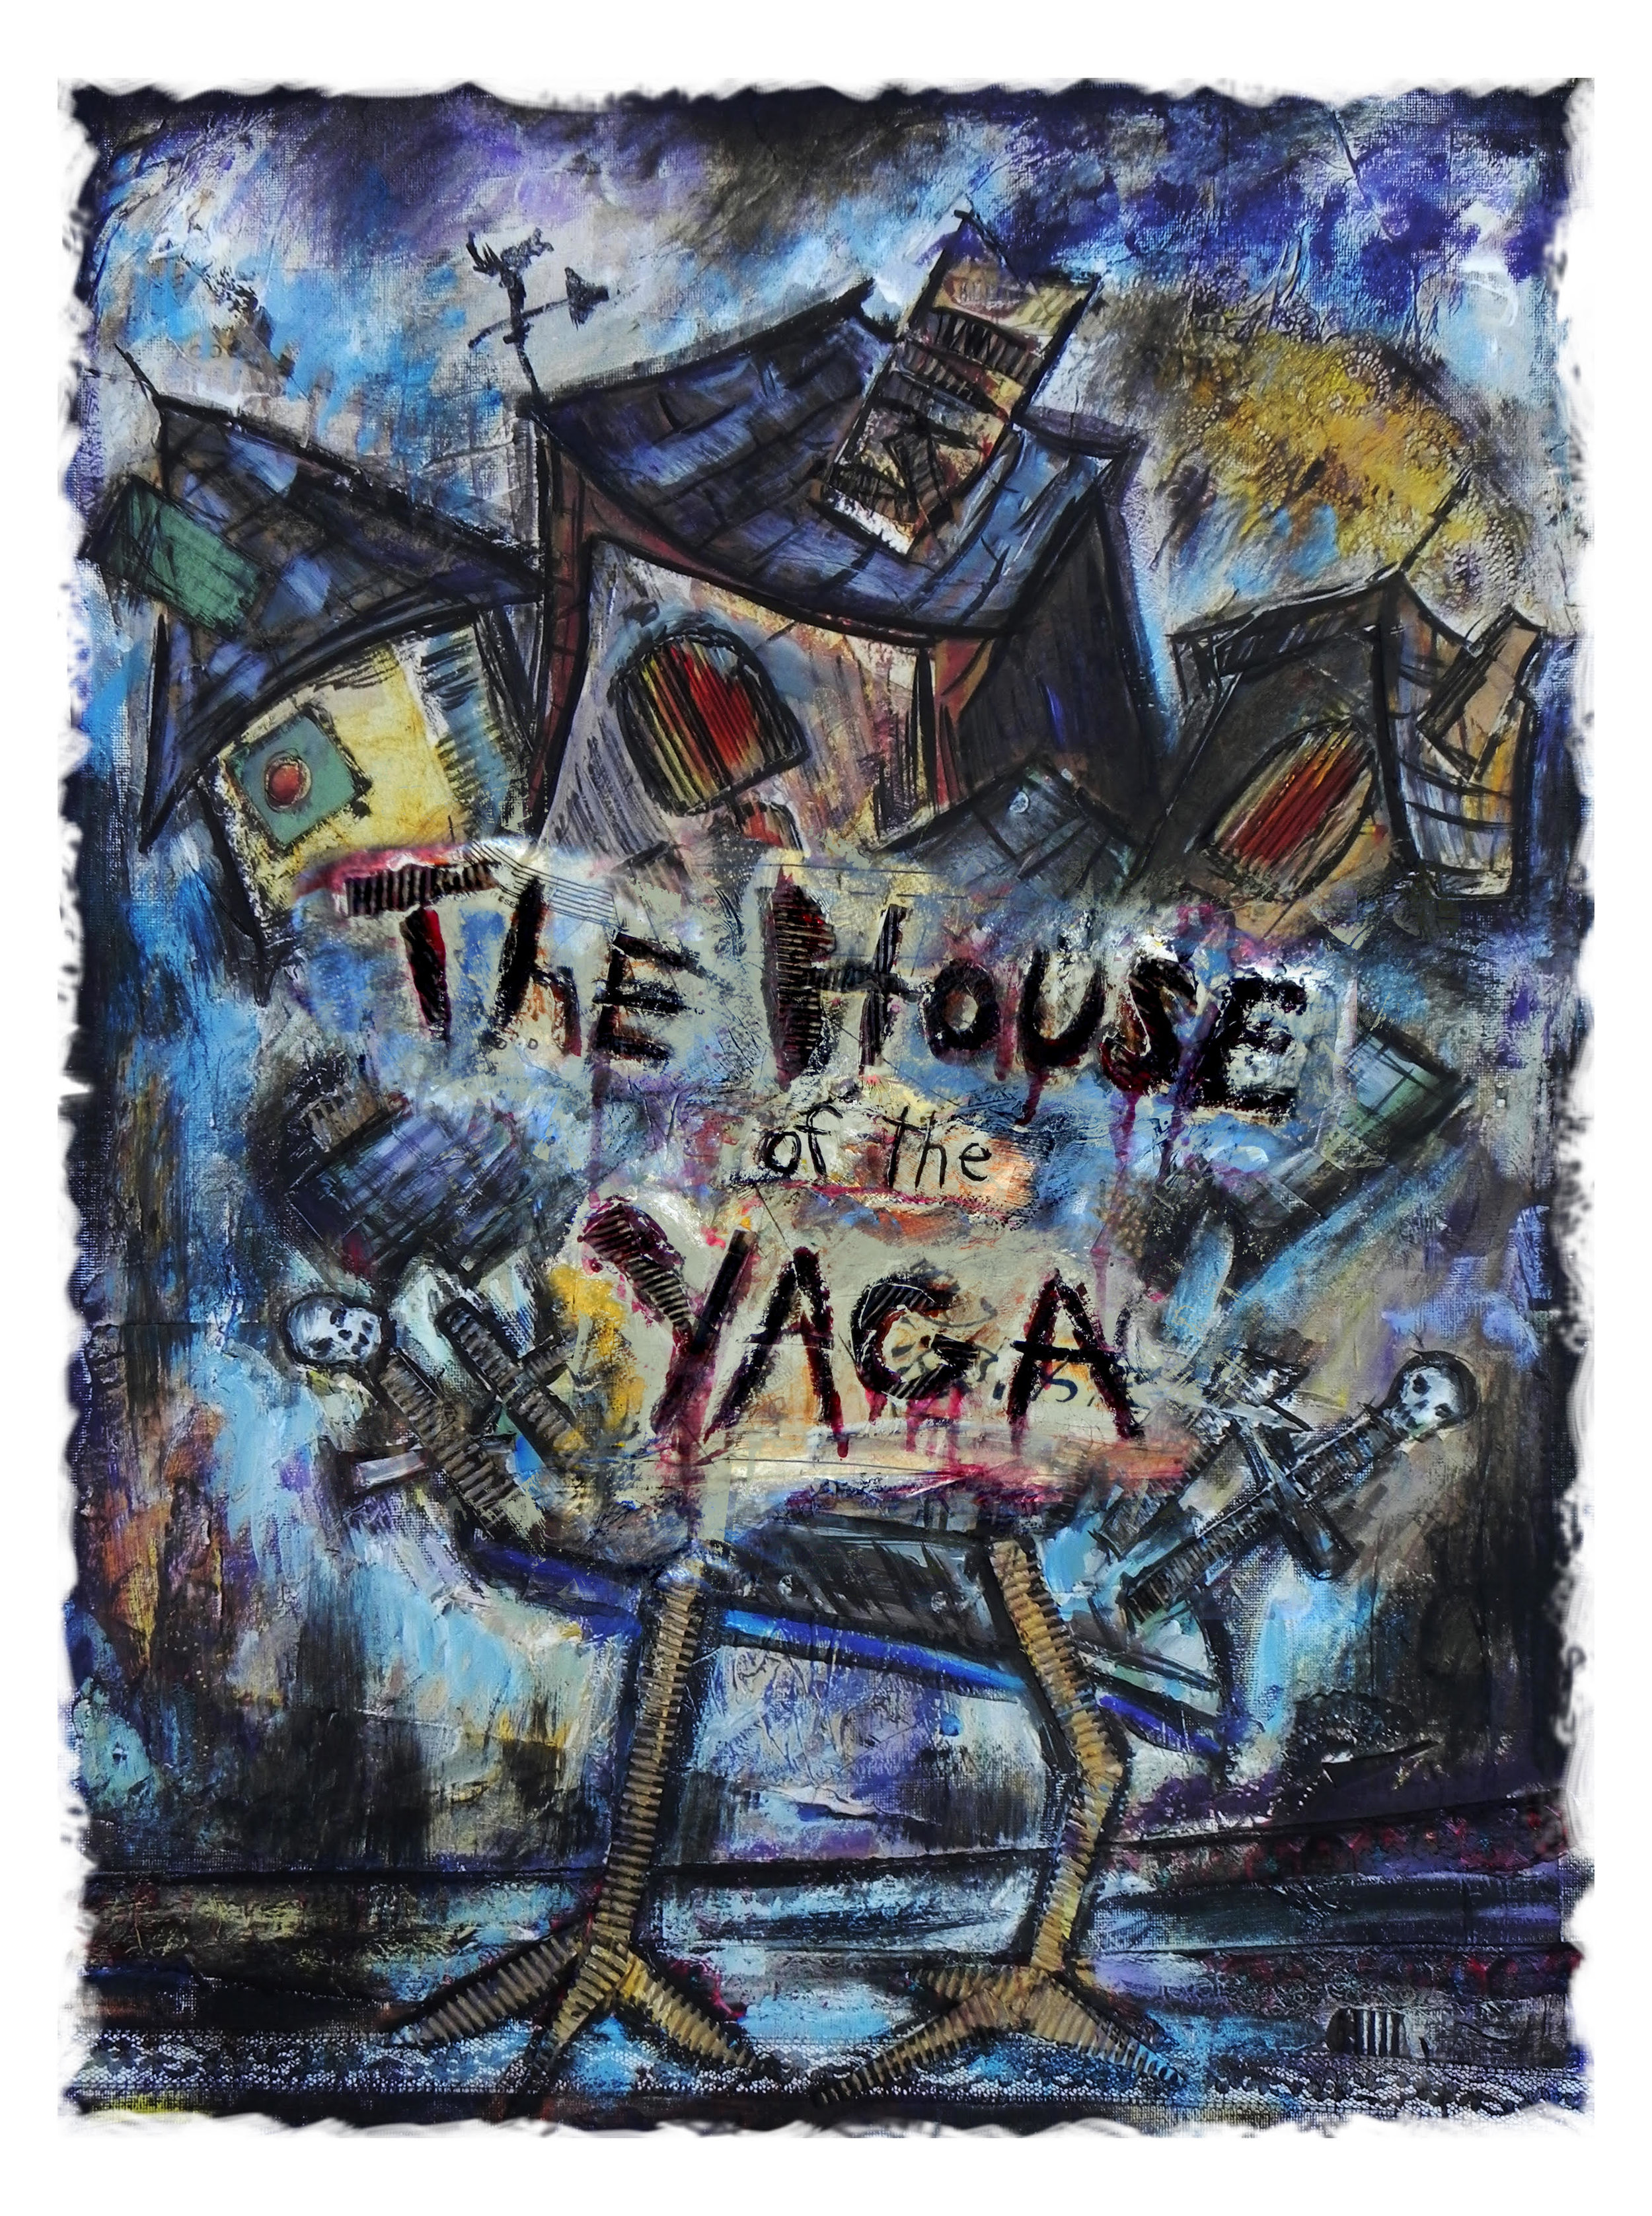 The Baba Yaga is terrorizing your village, can you destroy her before she destroys you?